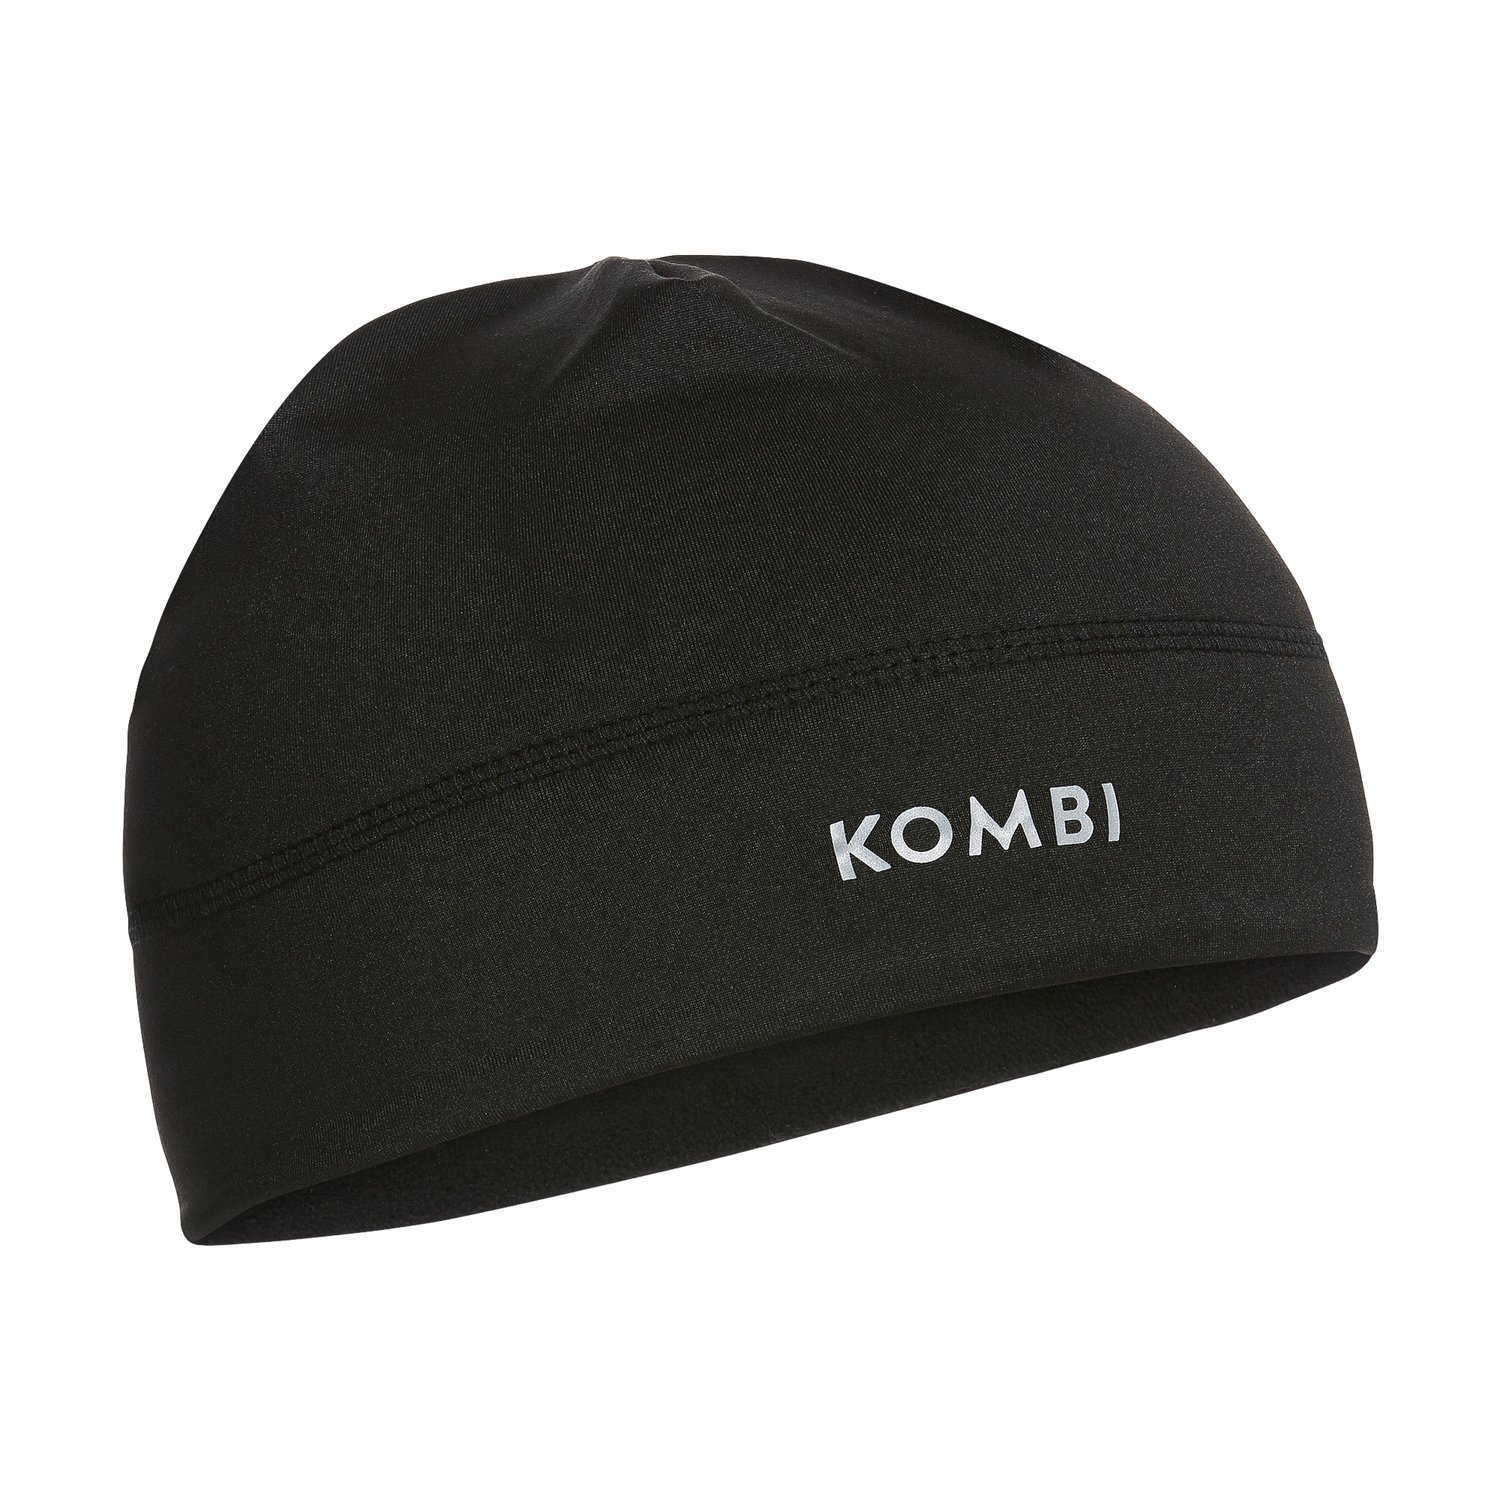 Kombi The Cardio Unisex Black